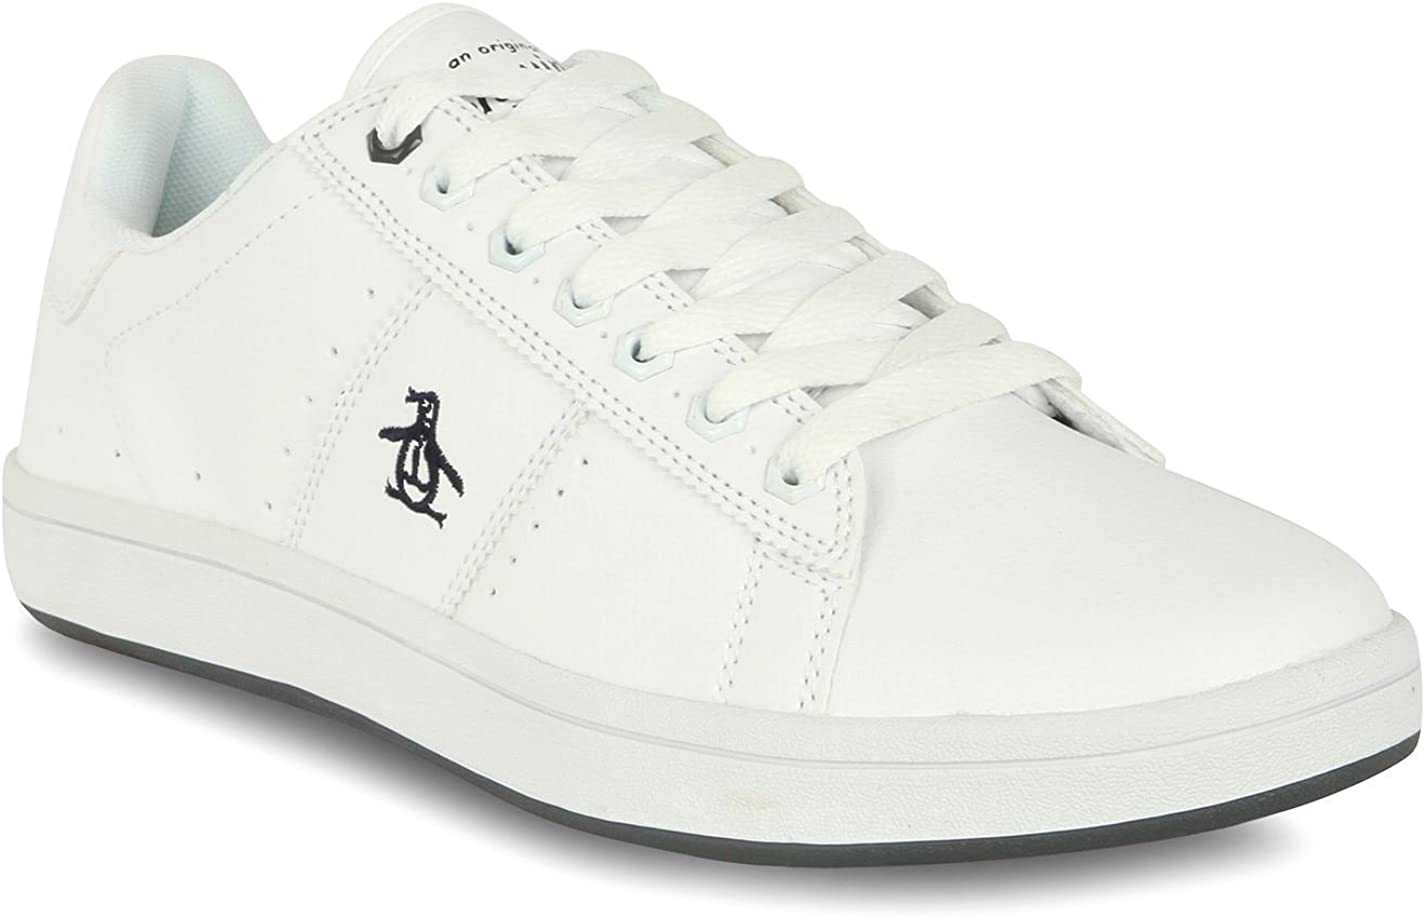 New MENS PENGUIN WHITE PLANE SYNTHETIC Sneakers Retro